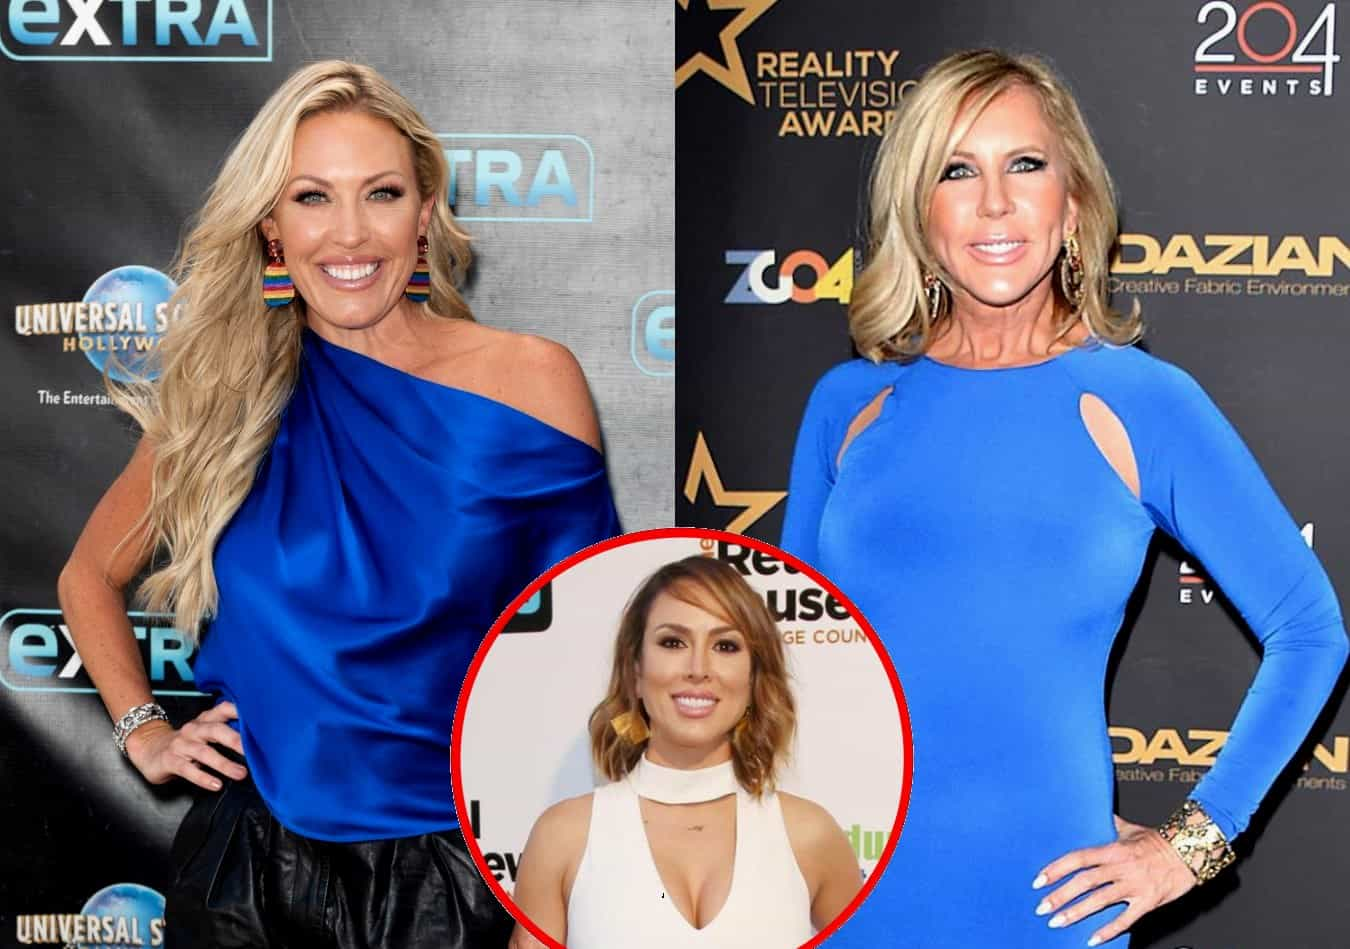 Braunwyn Windham-Burke Shades Vicki Gunvalson's Claim That RHOC is 'Her Show' and Vicki Fires Back, Plus She Responds to Fan Who Criticizes Her Friendship With Kelly